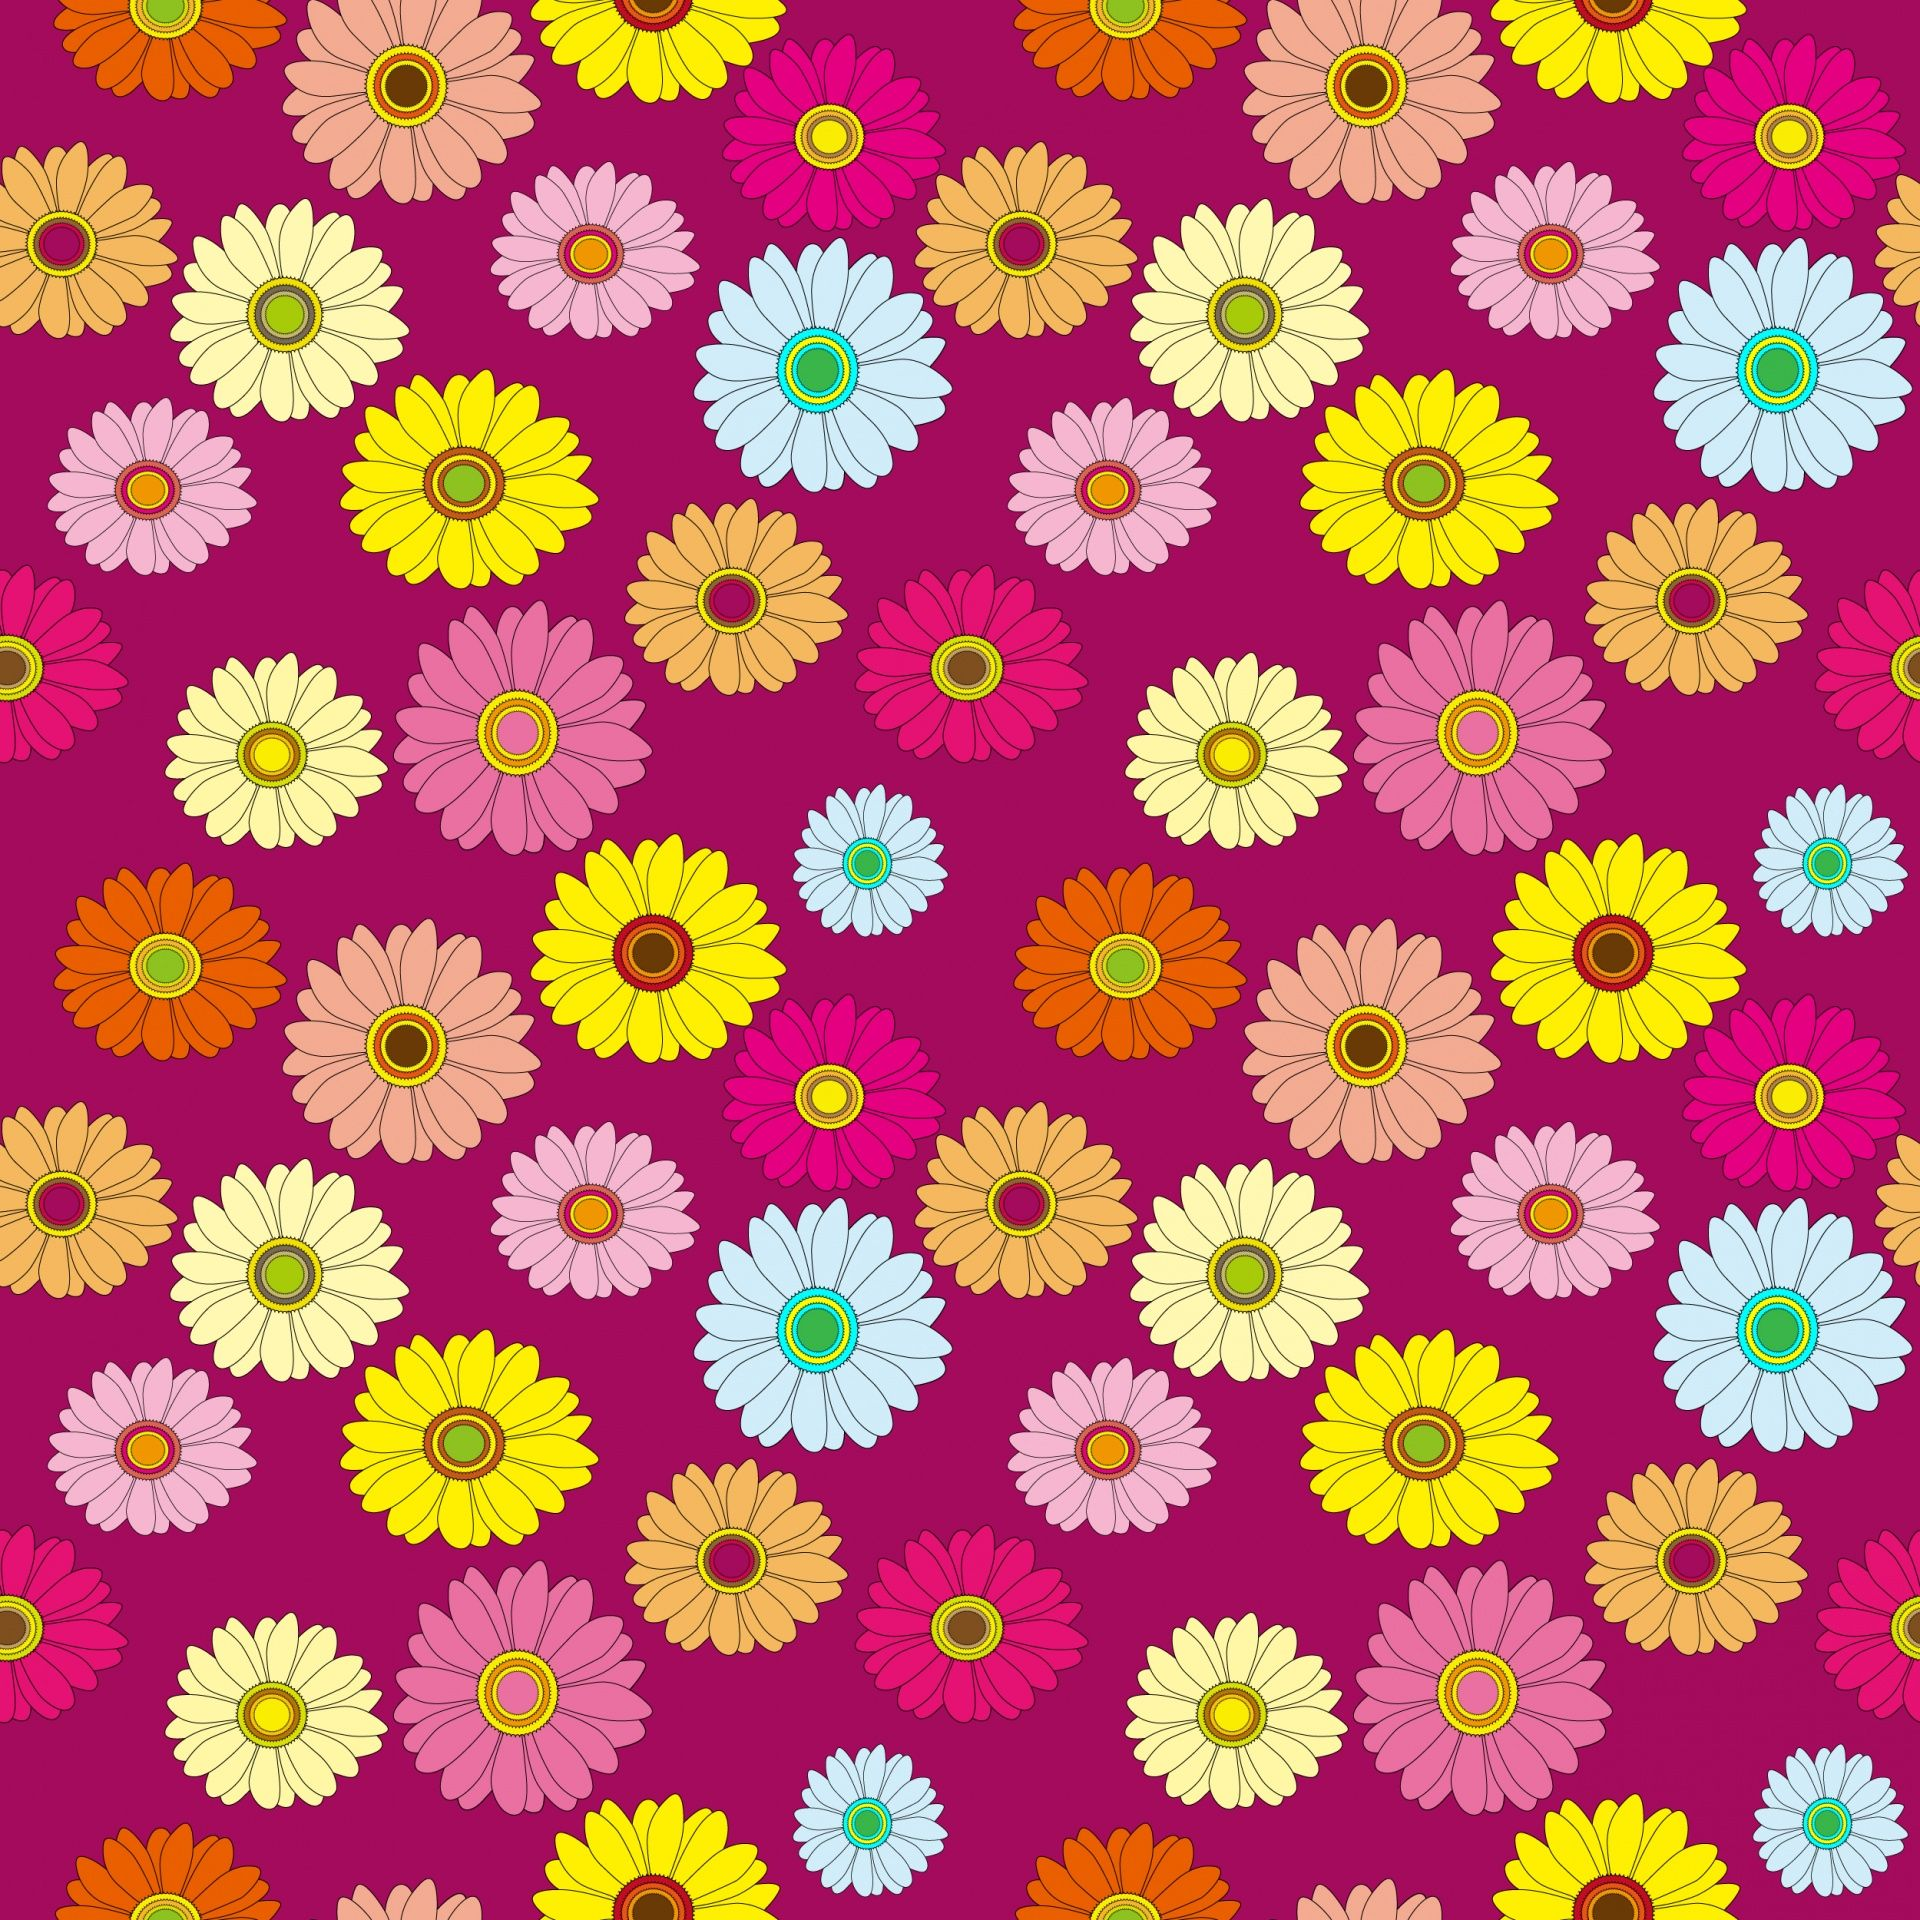 Floral Pattern Colorful Wallpaper Free Stock Photo - Design Colorful Wallpaper Background - HD Wallpaper